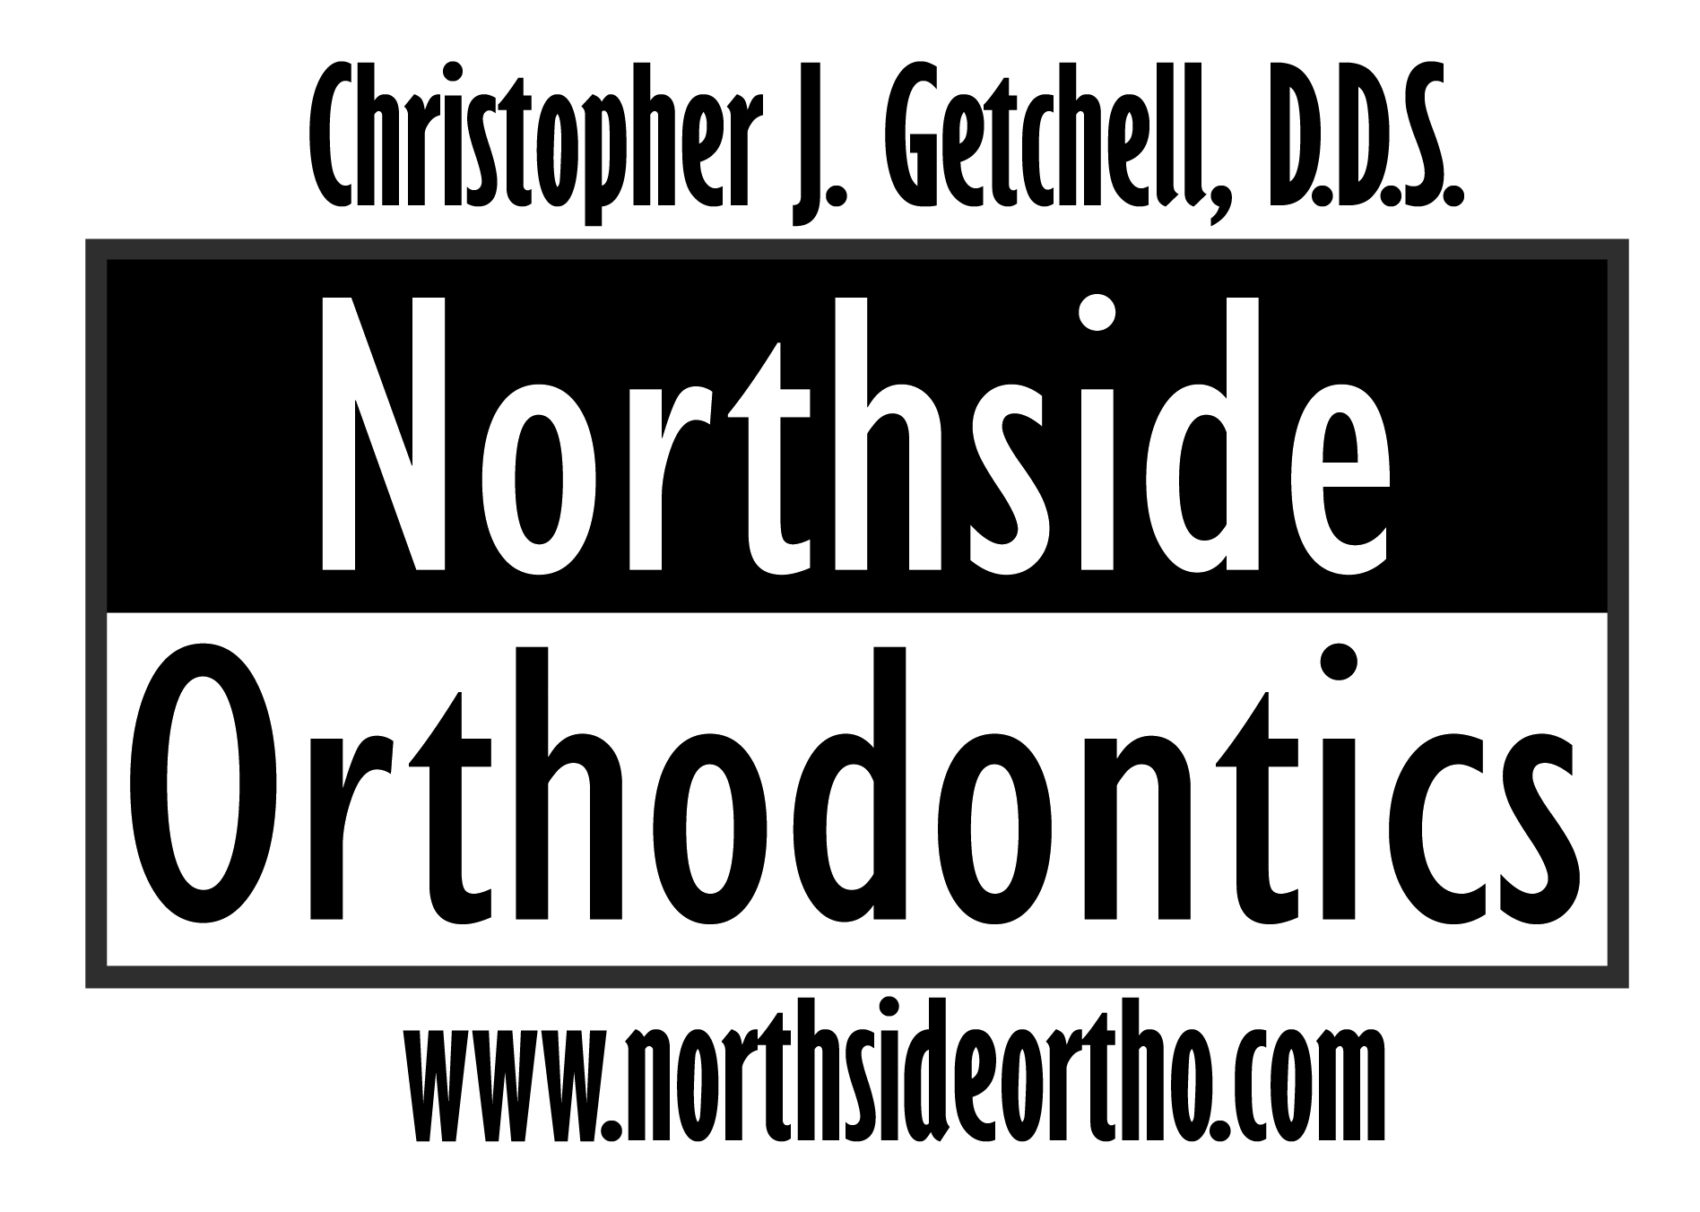 Northside Orthodontics logo.ai